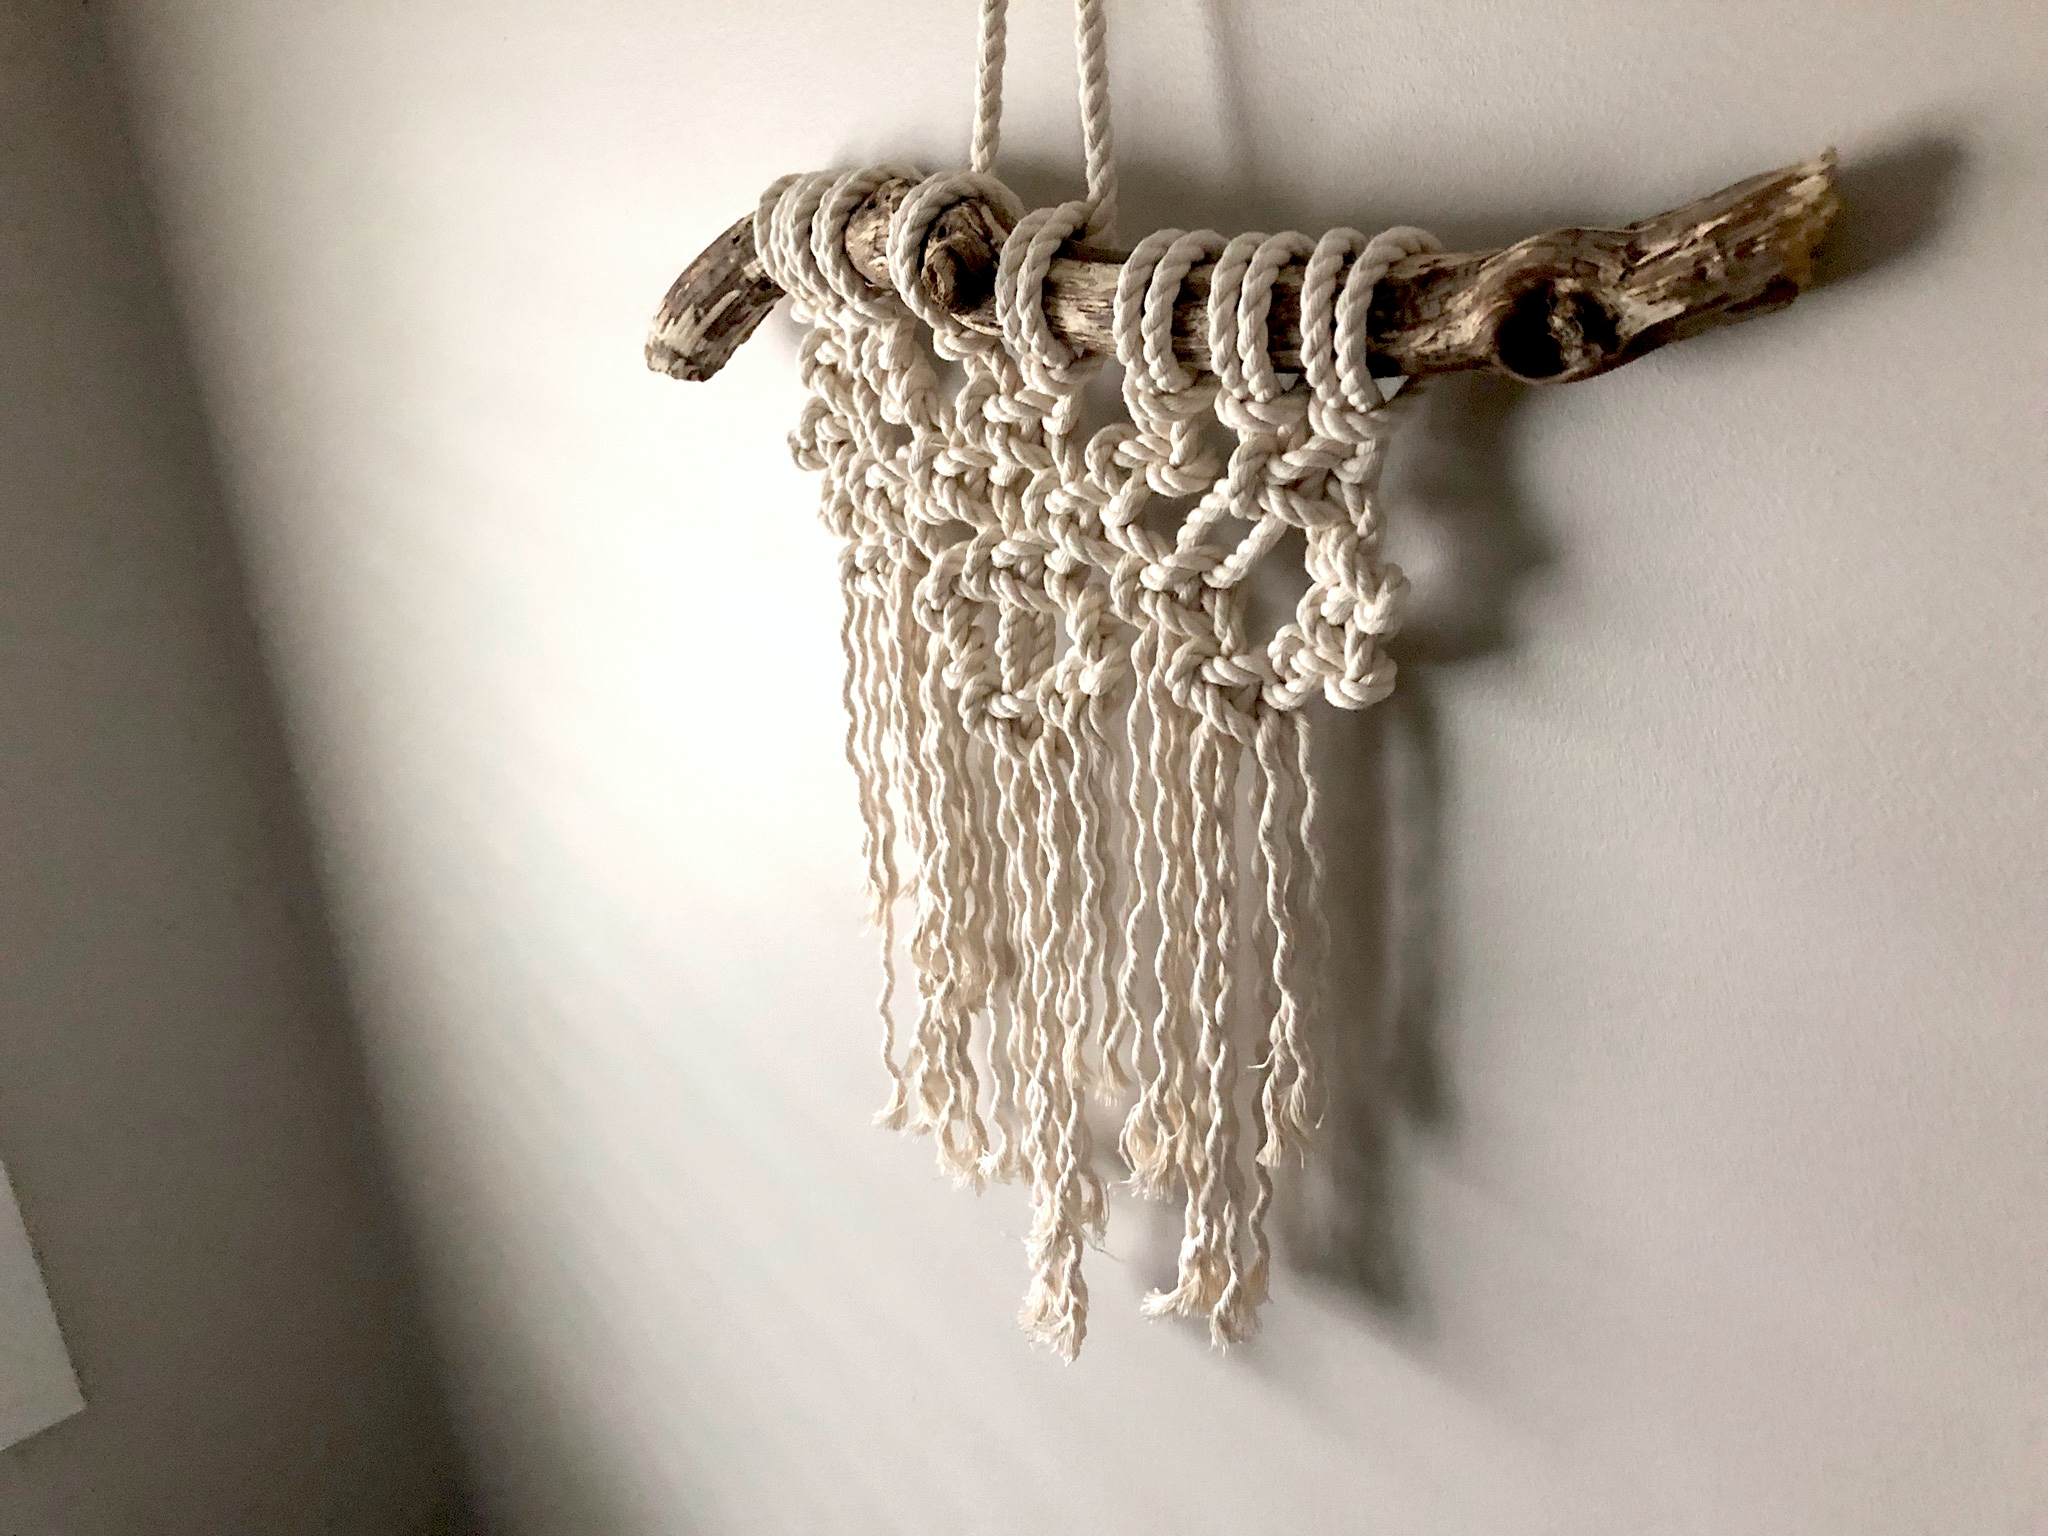 A small rope experiment - sold